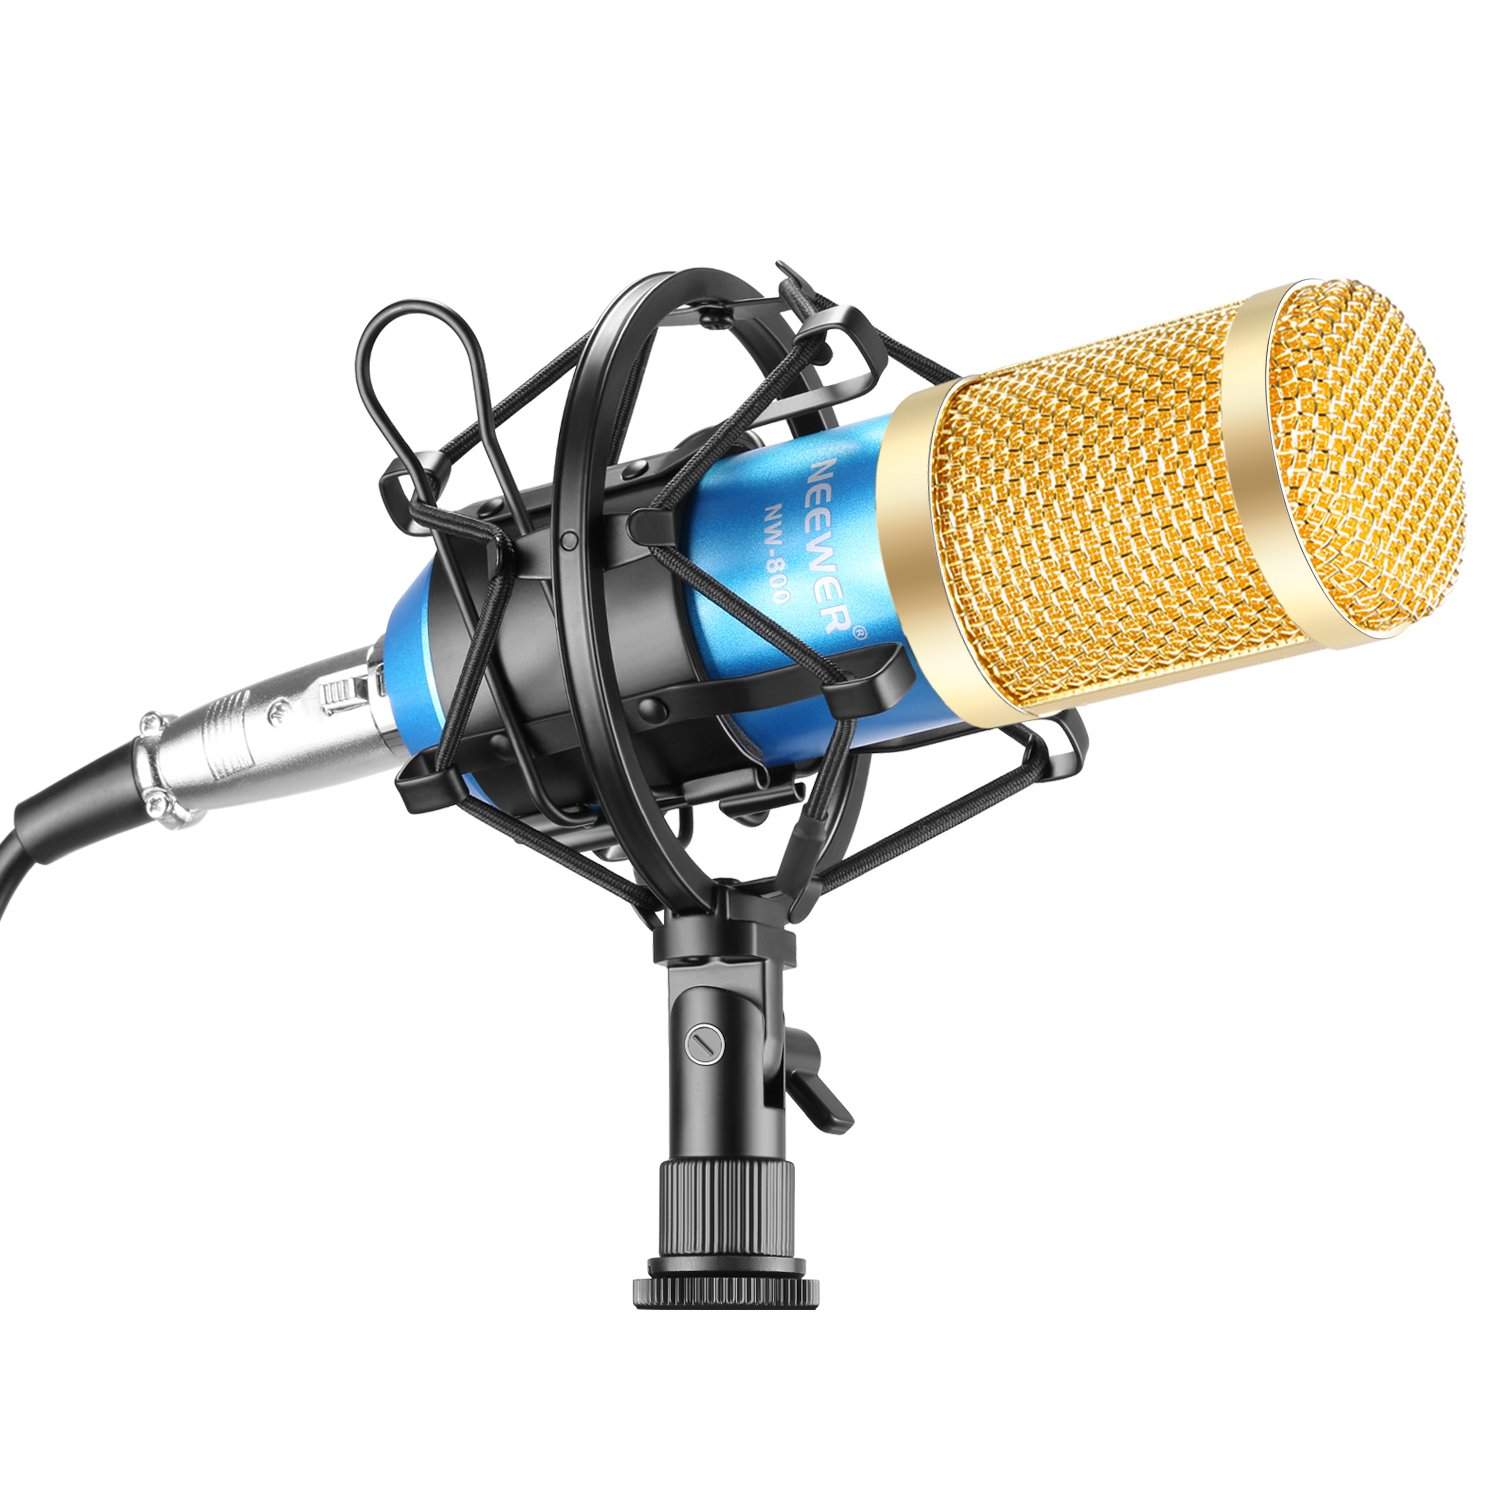 Neewer NW-800 Professional Studio Broadcasting & Recording Microphone Set Including (1)NW-800 Professional Condenser Microphone + (1)Microphone Shock Mount + (1)Ball-type Anti-wind Foam Cap + (1)Microphone Power Cable (Blue) by Neewer